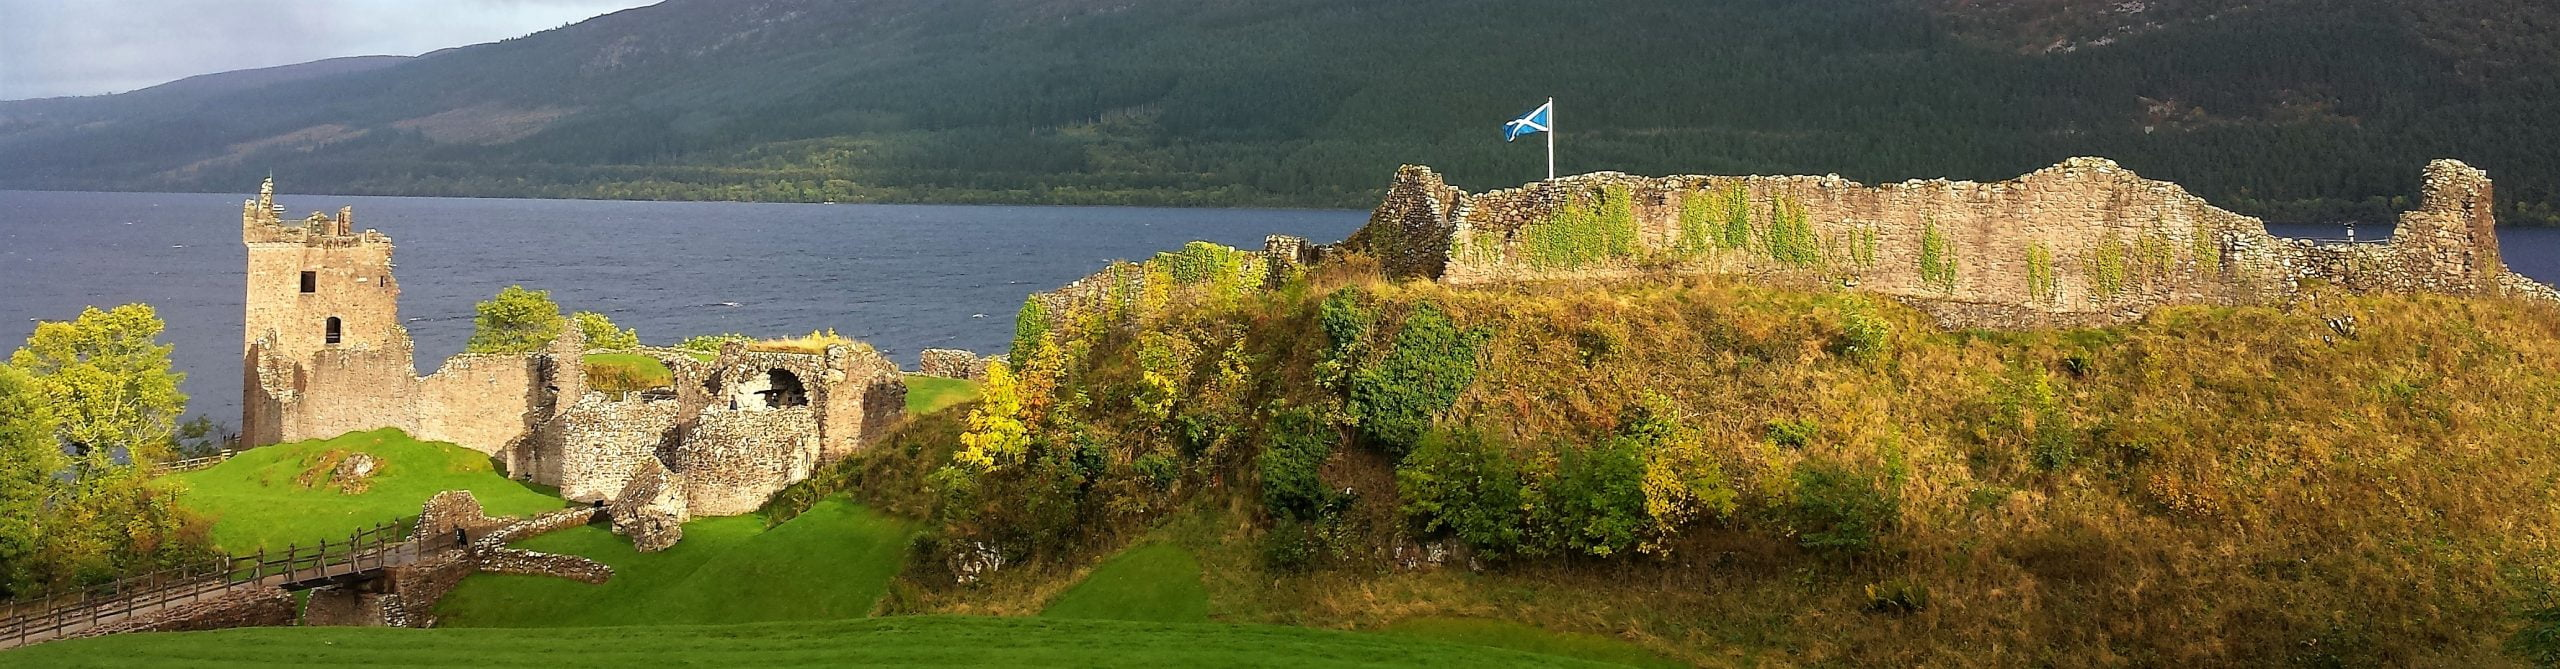 Urquhart Castle and Loch Ness - Tours from Invergordon Cruise Port